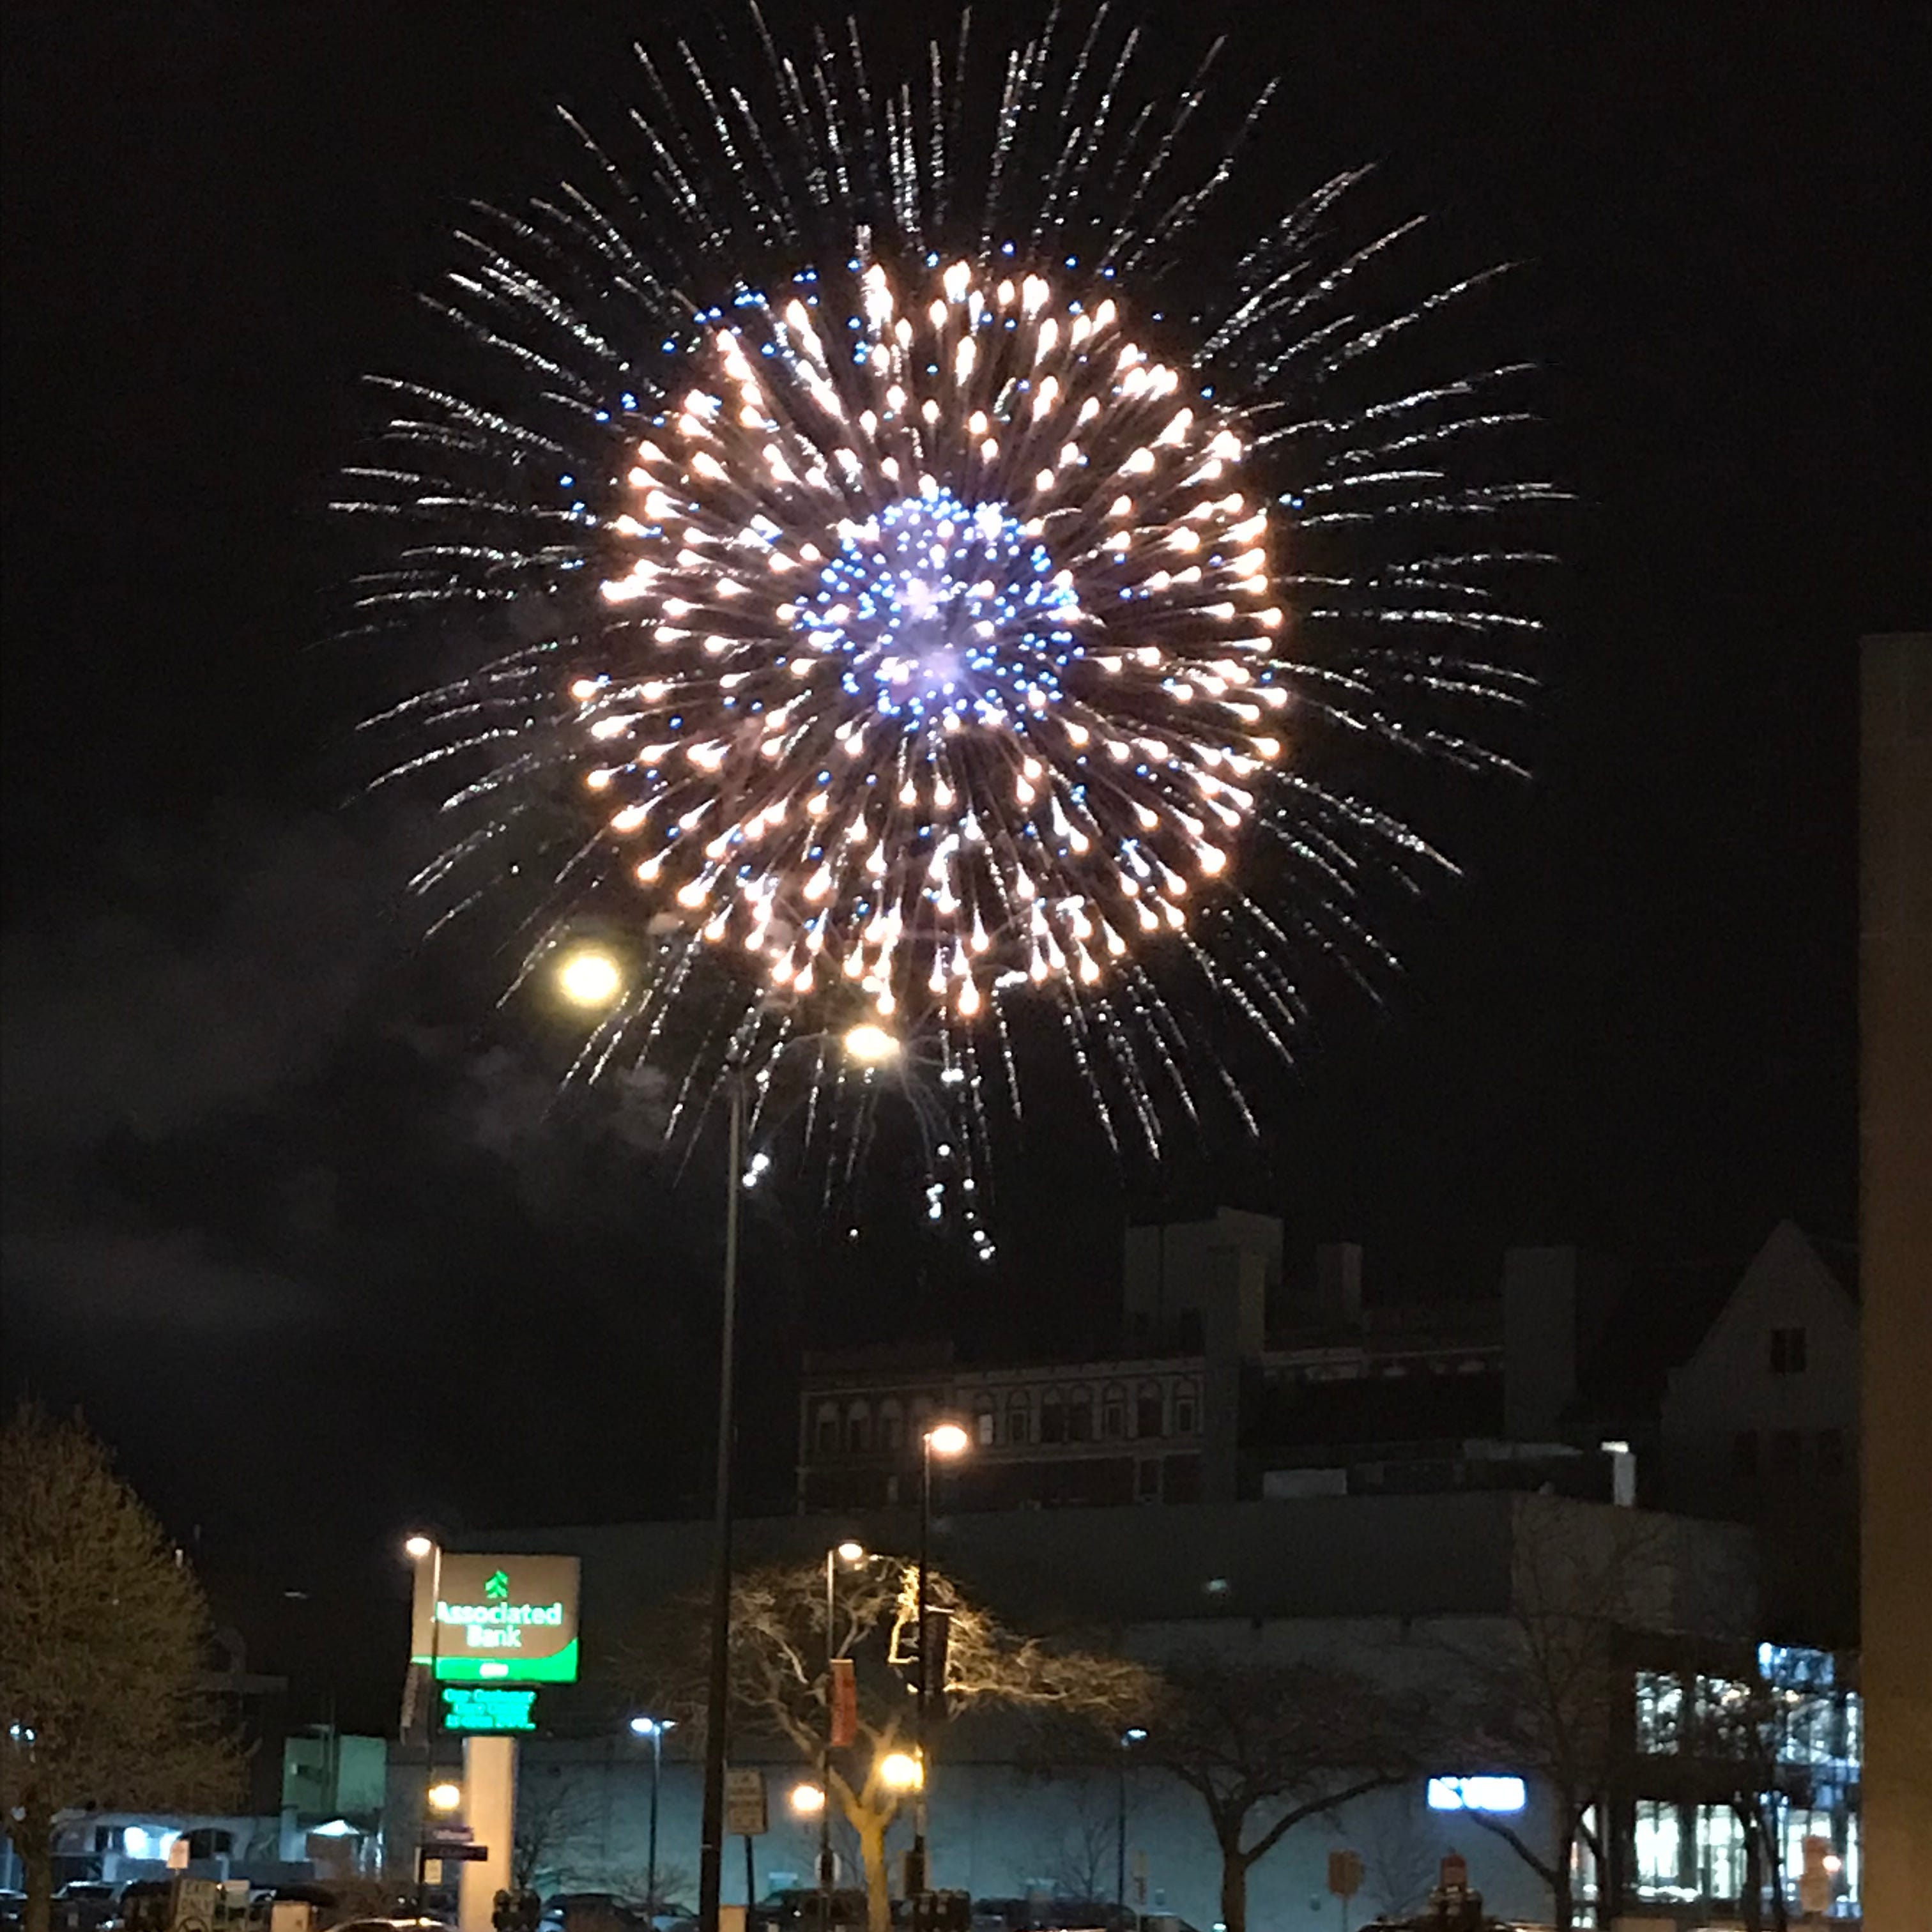 Fireworks explode in downtown Green Bay on Friday, March 29, 2019, as part of Mayor Jim Schmitt's gala.